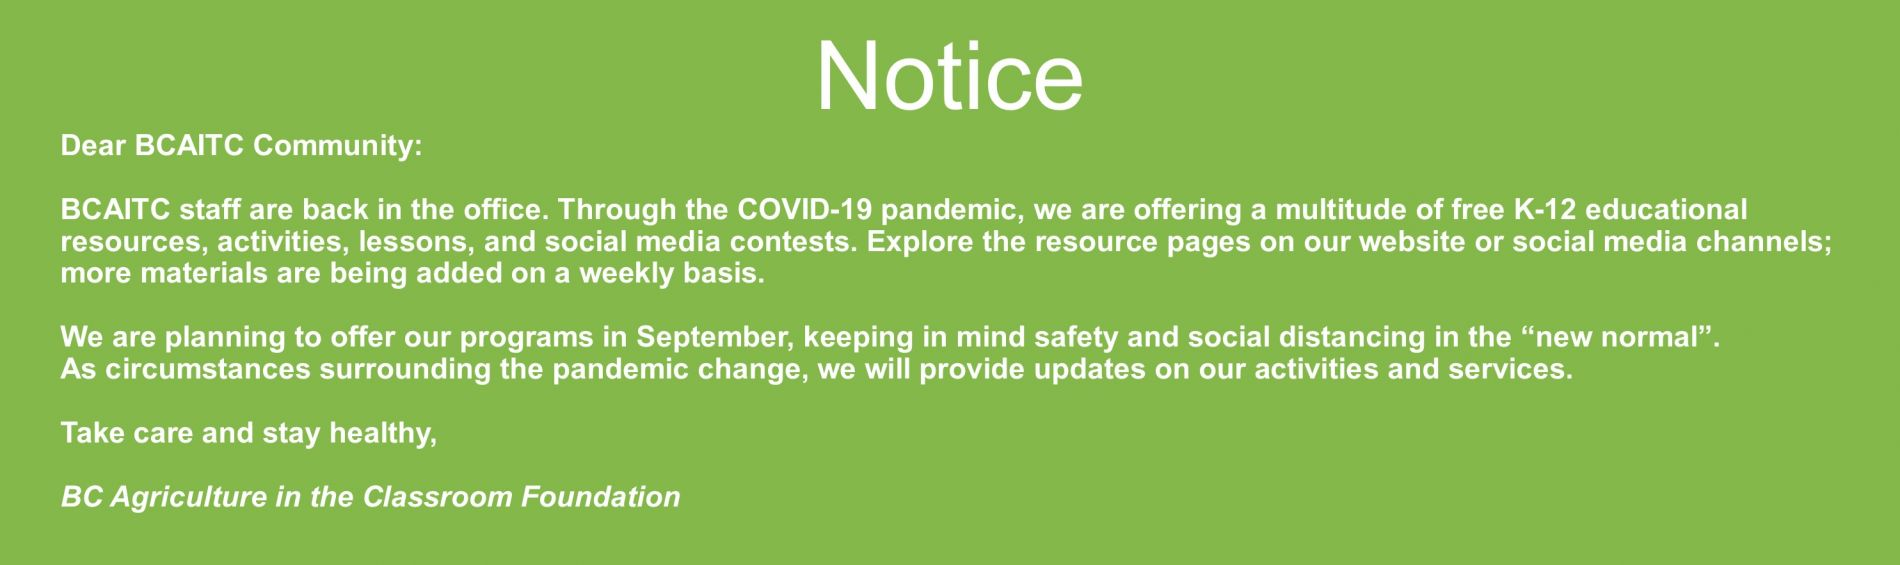 COVID-19 Updated Notice